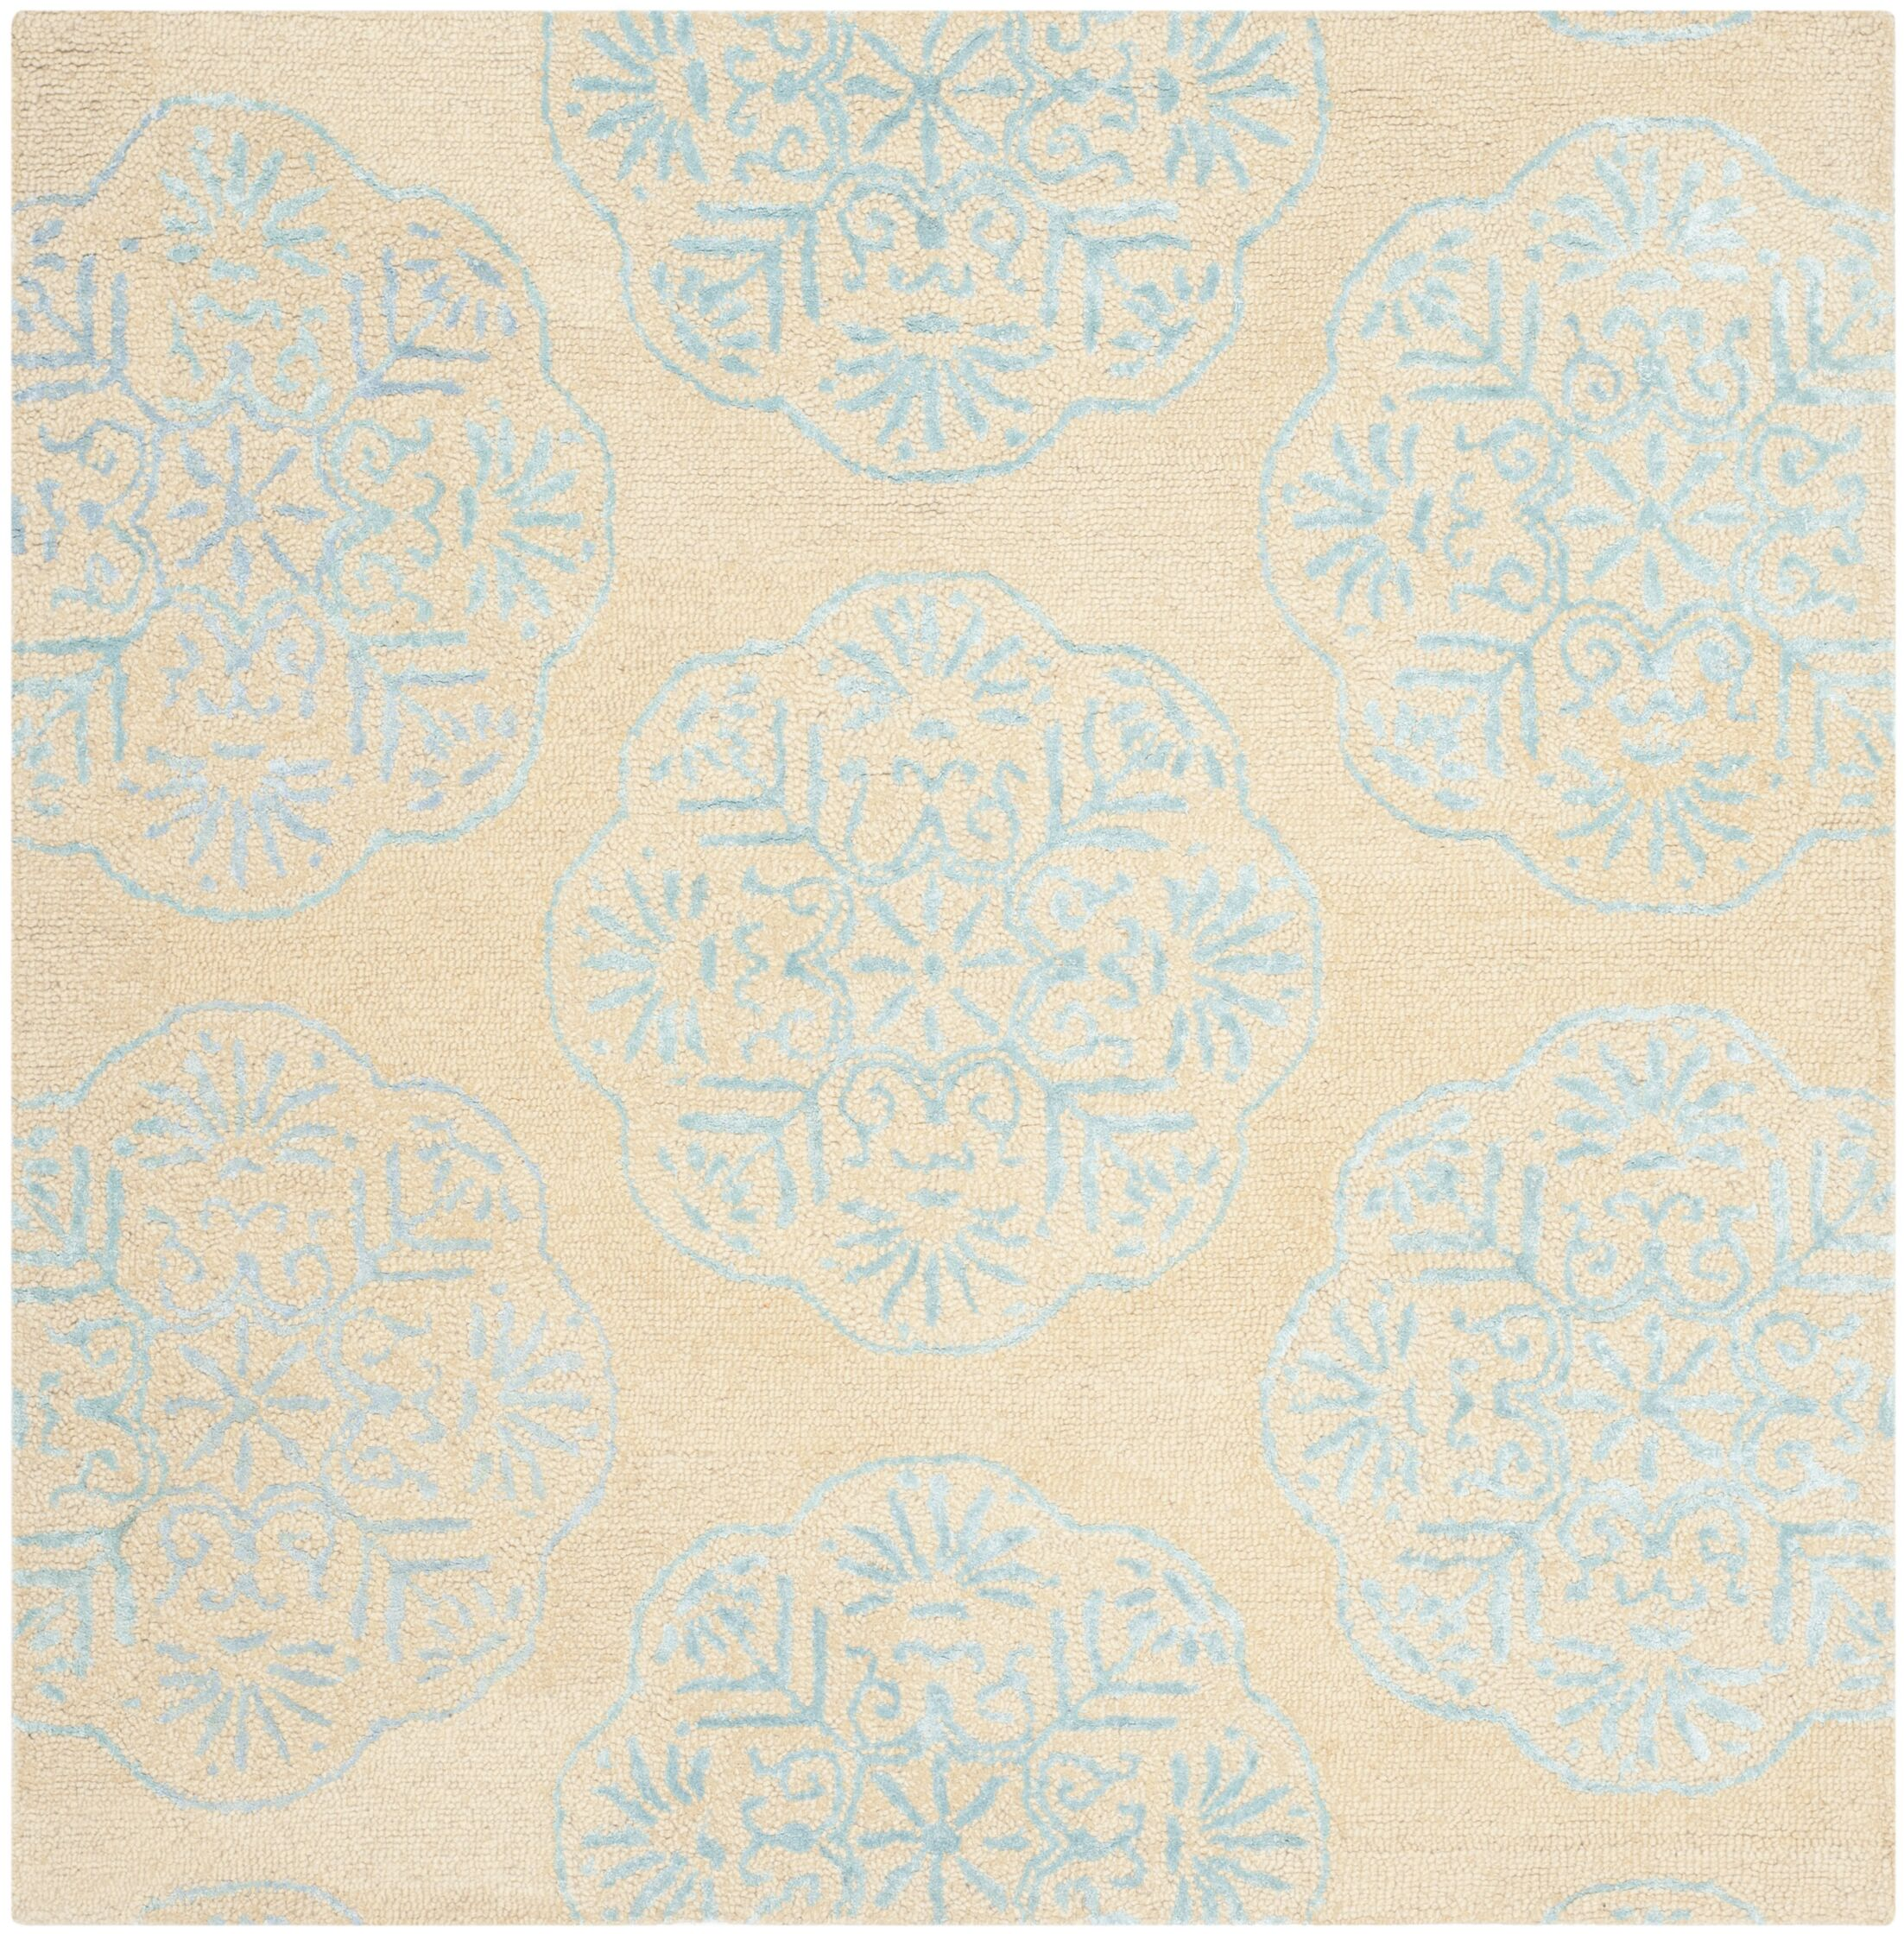 Rudra Beige/Turquoise Area Rug Rug Size: Square 6'